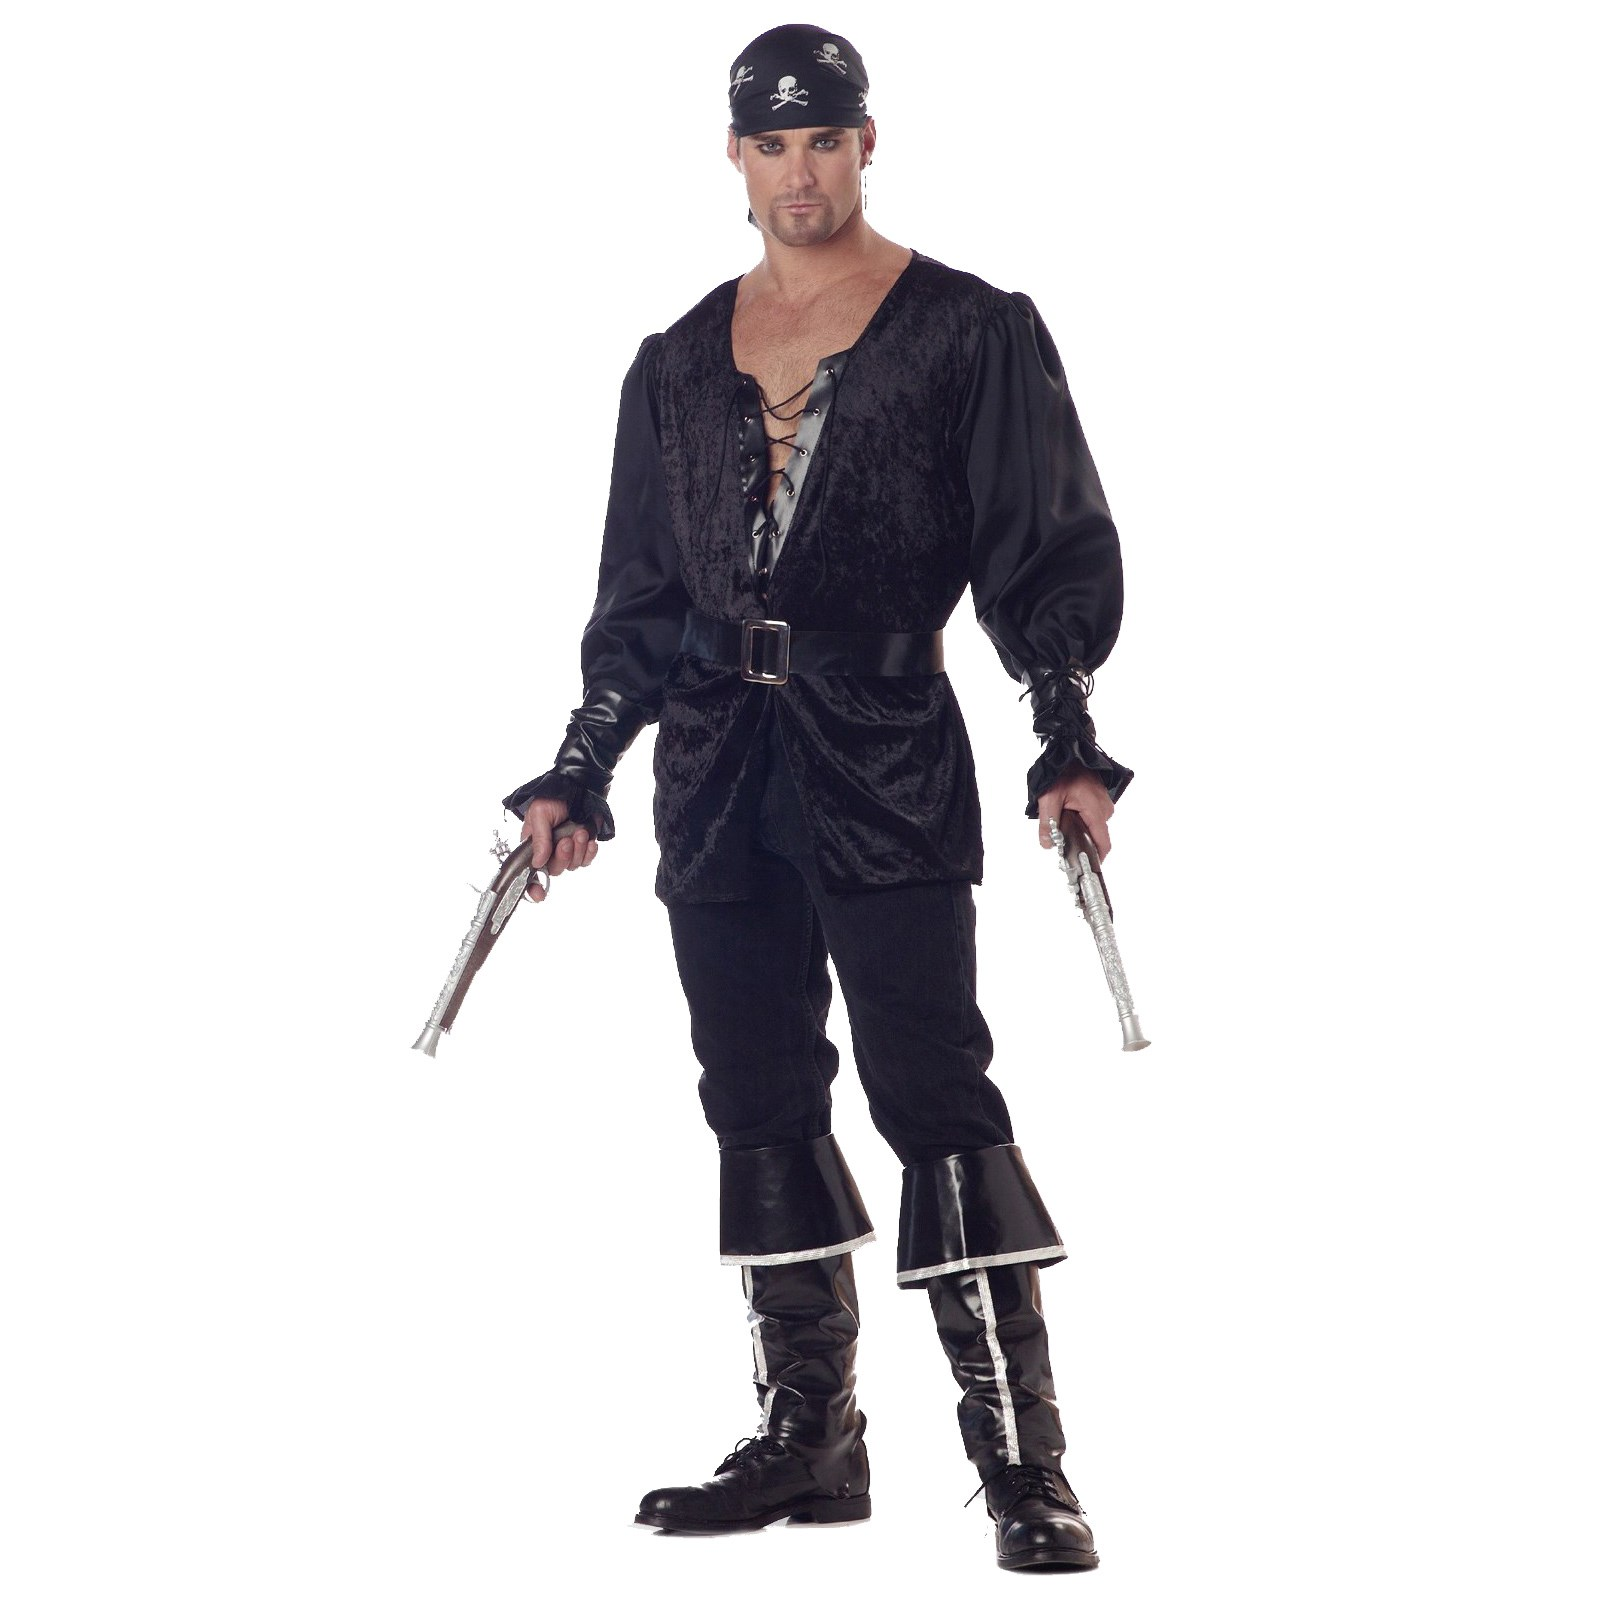 Image of Blackheart The Pirate Adult Costume